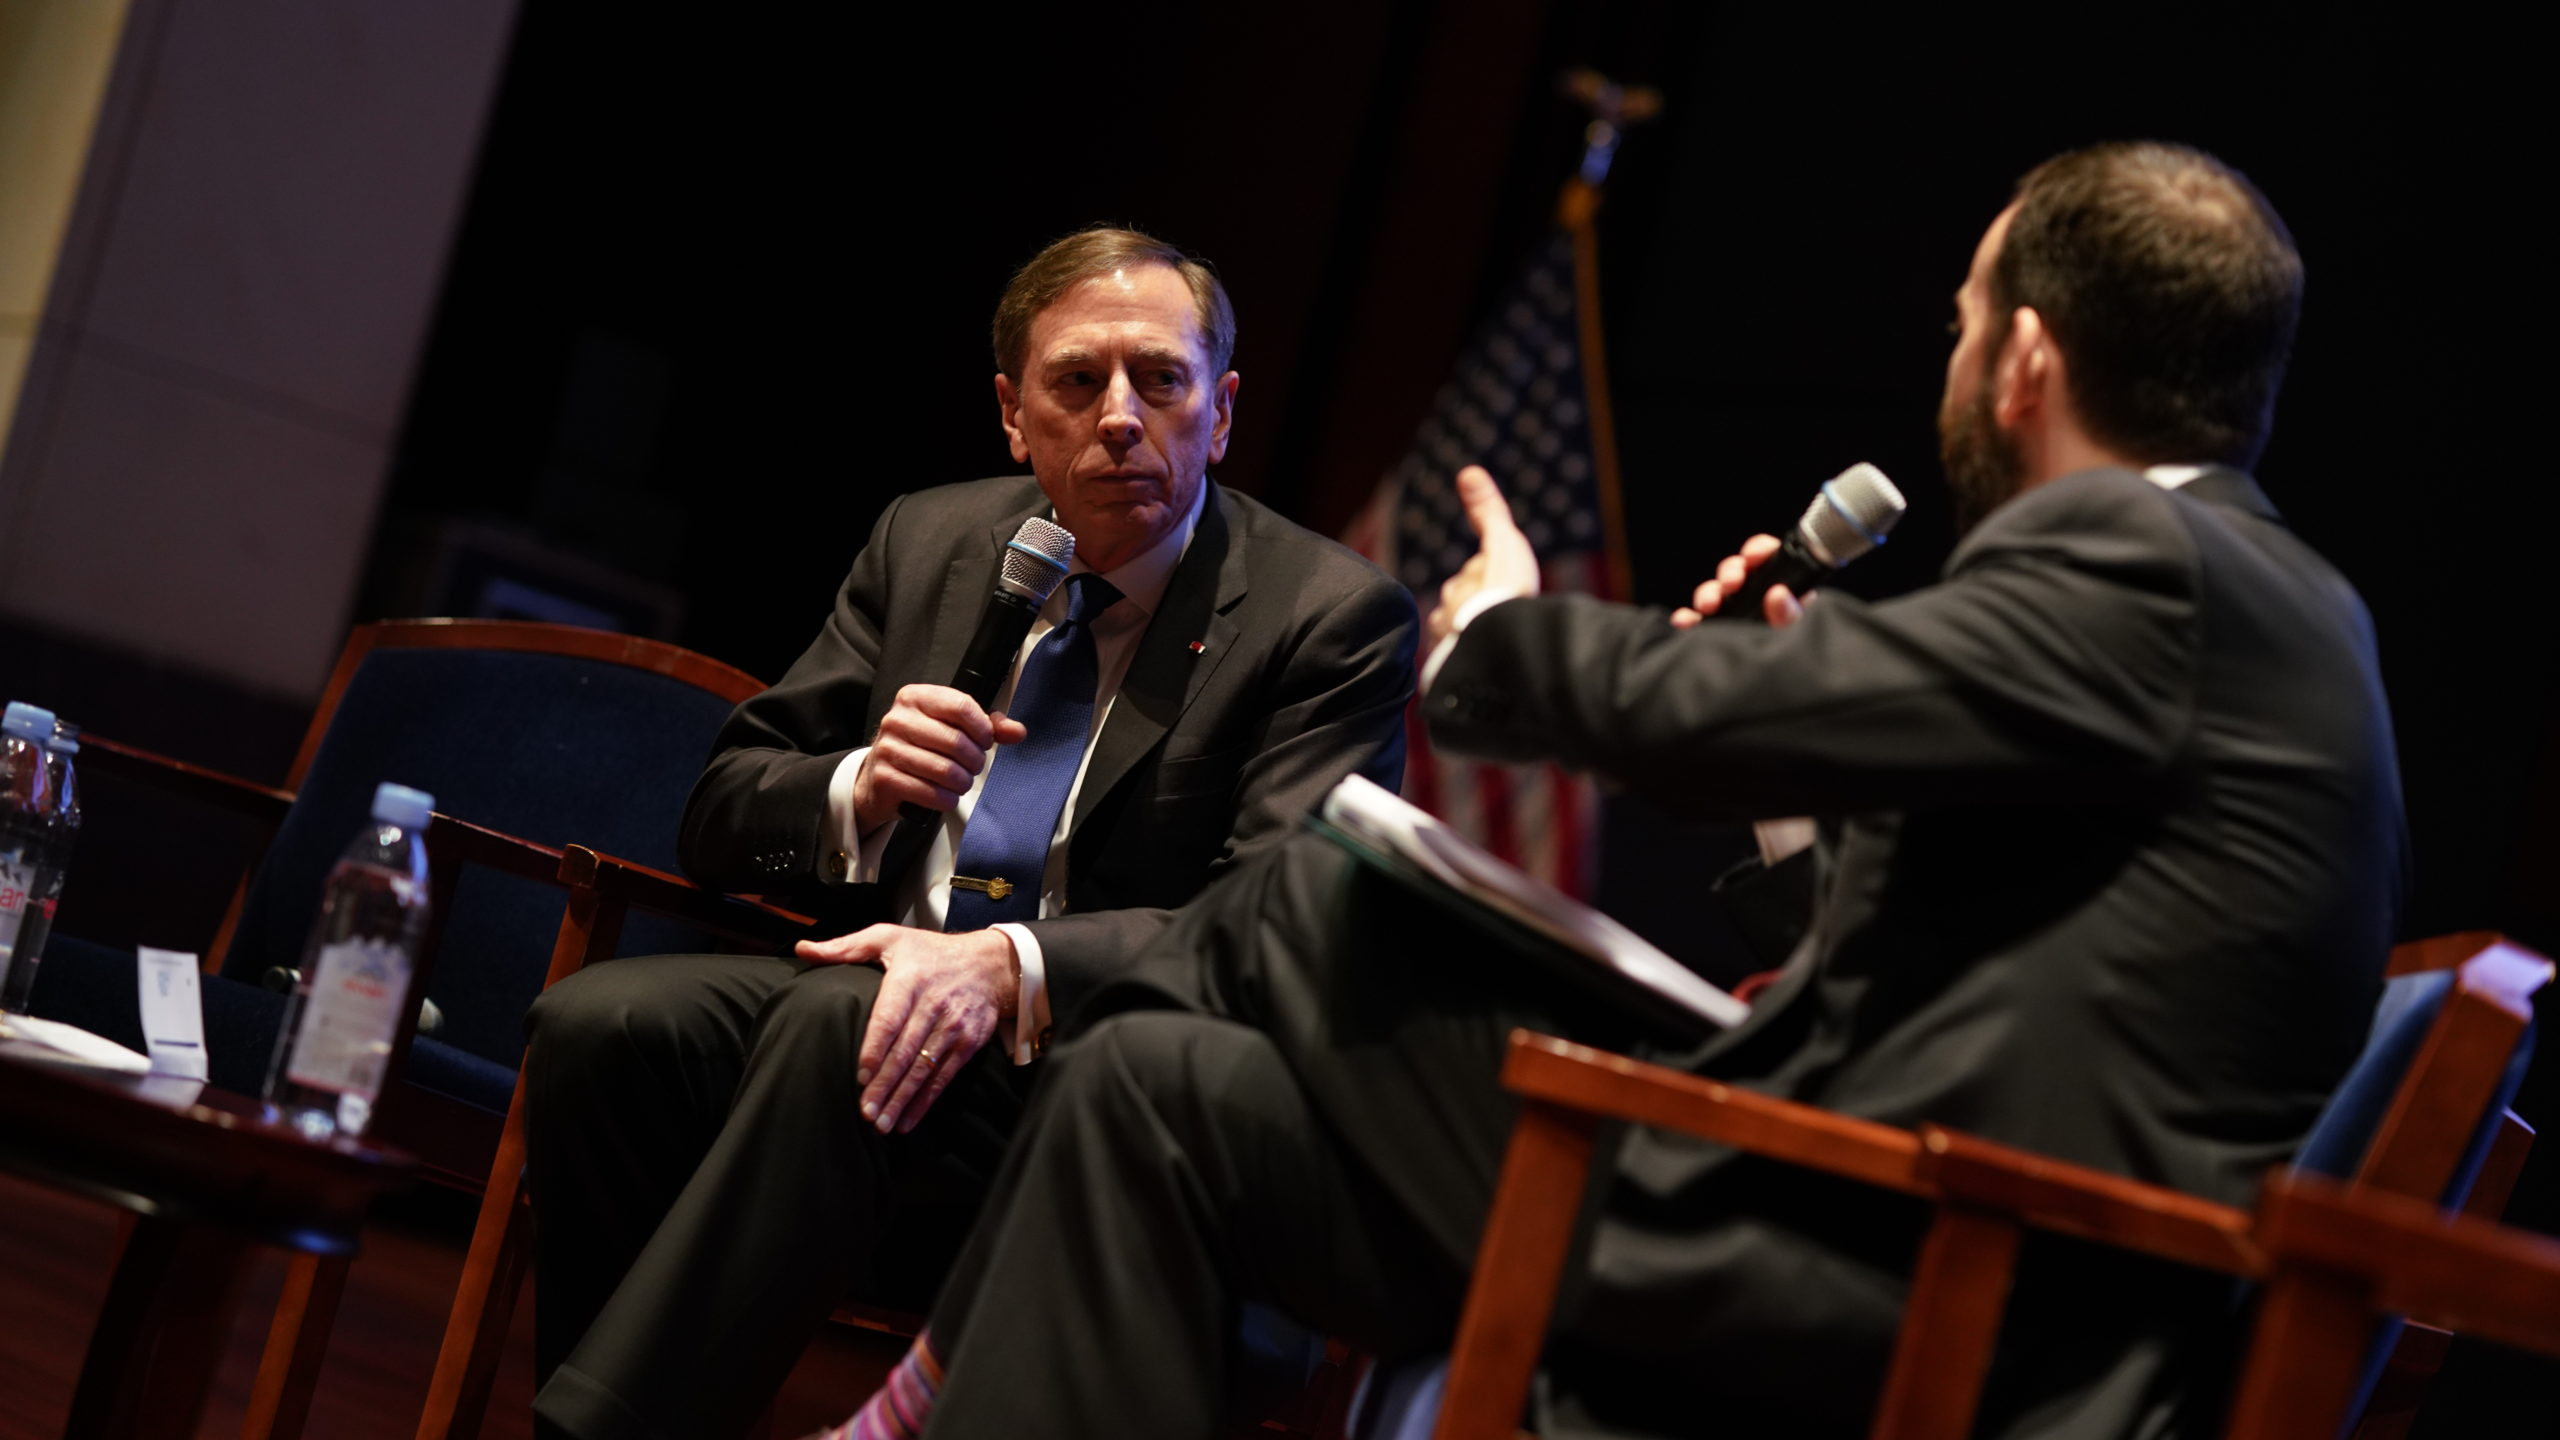 Conversation with Retired Gen. David H. Petraeus